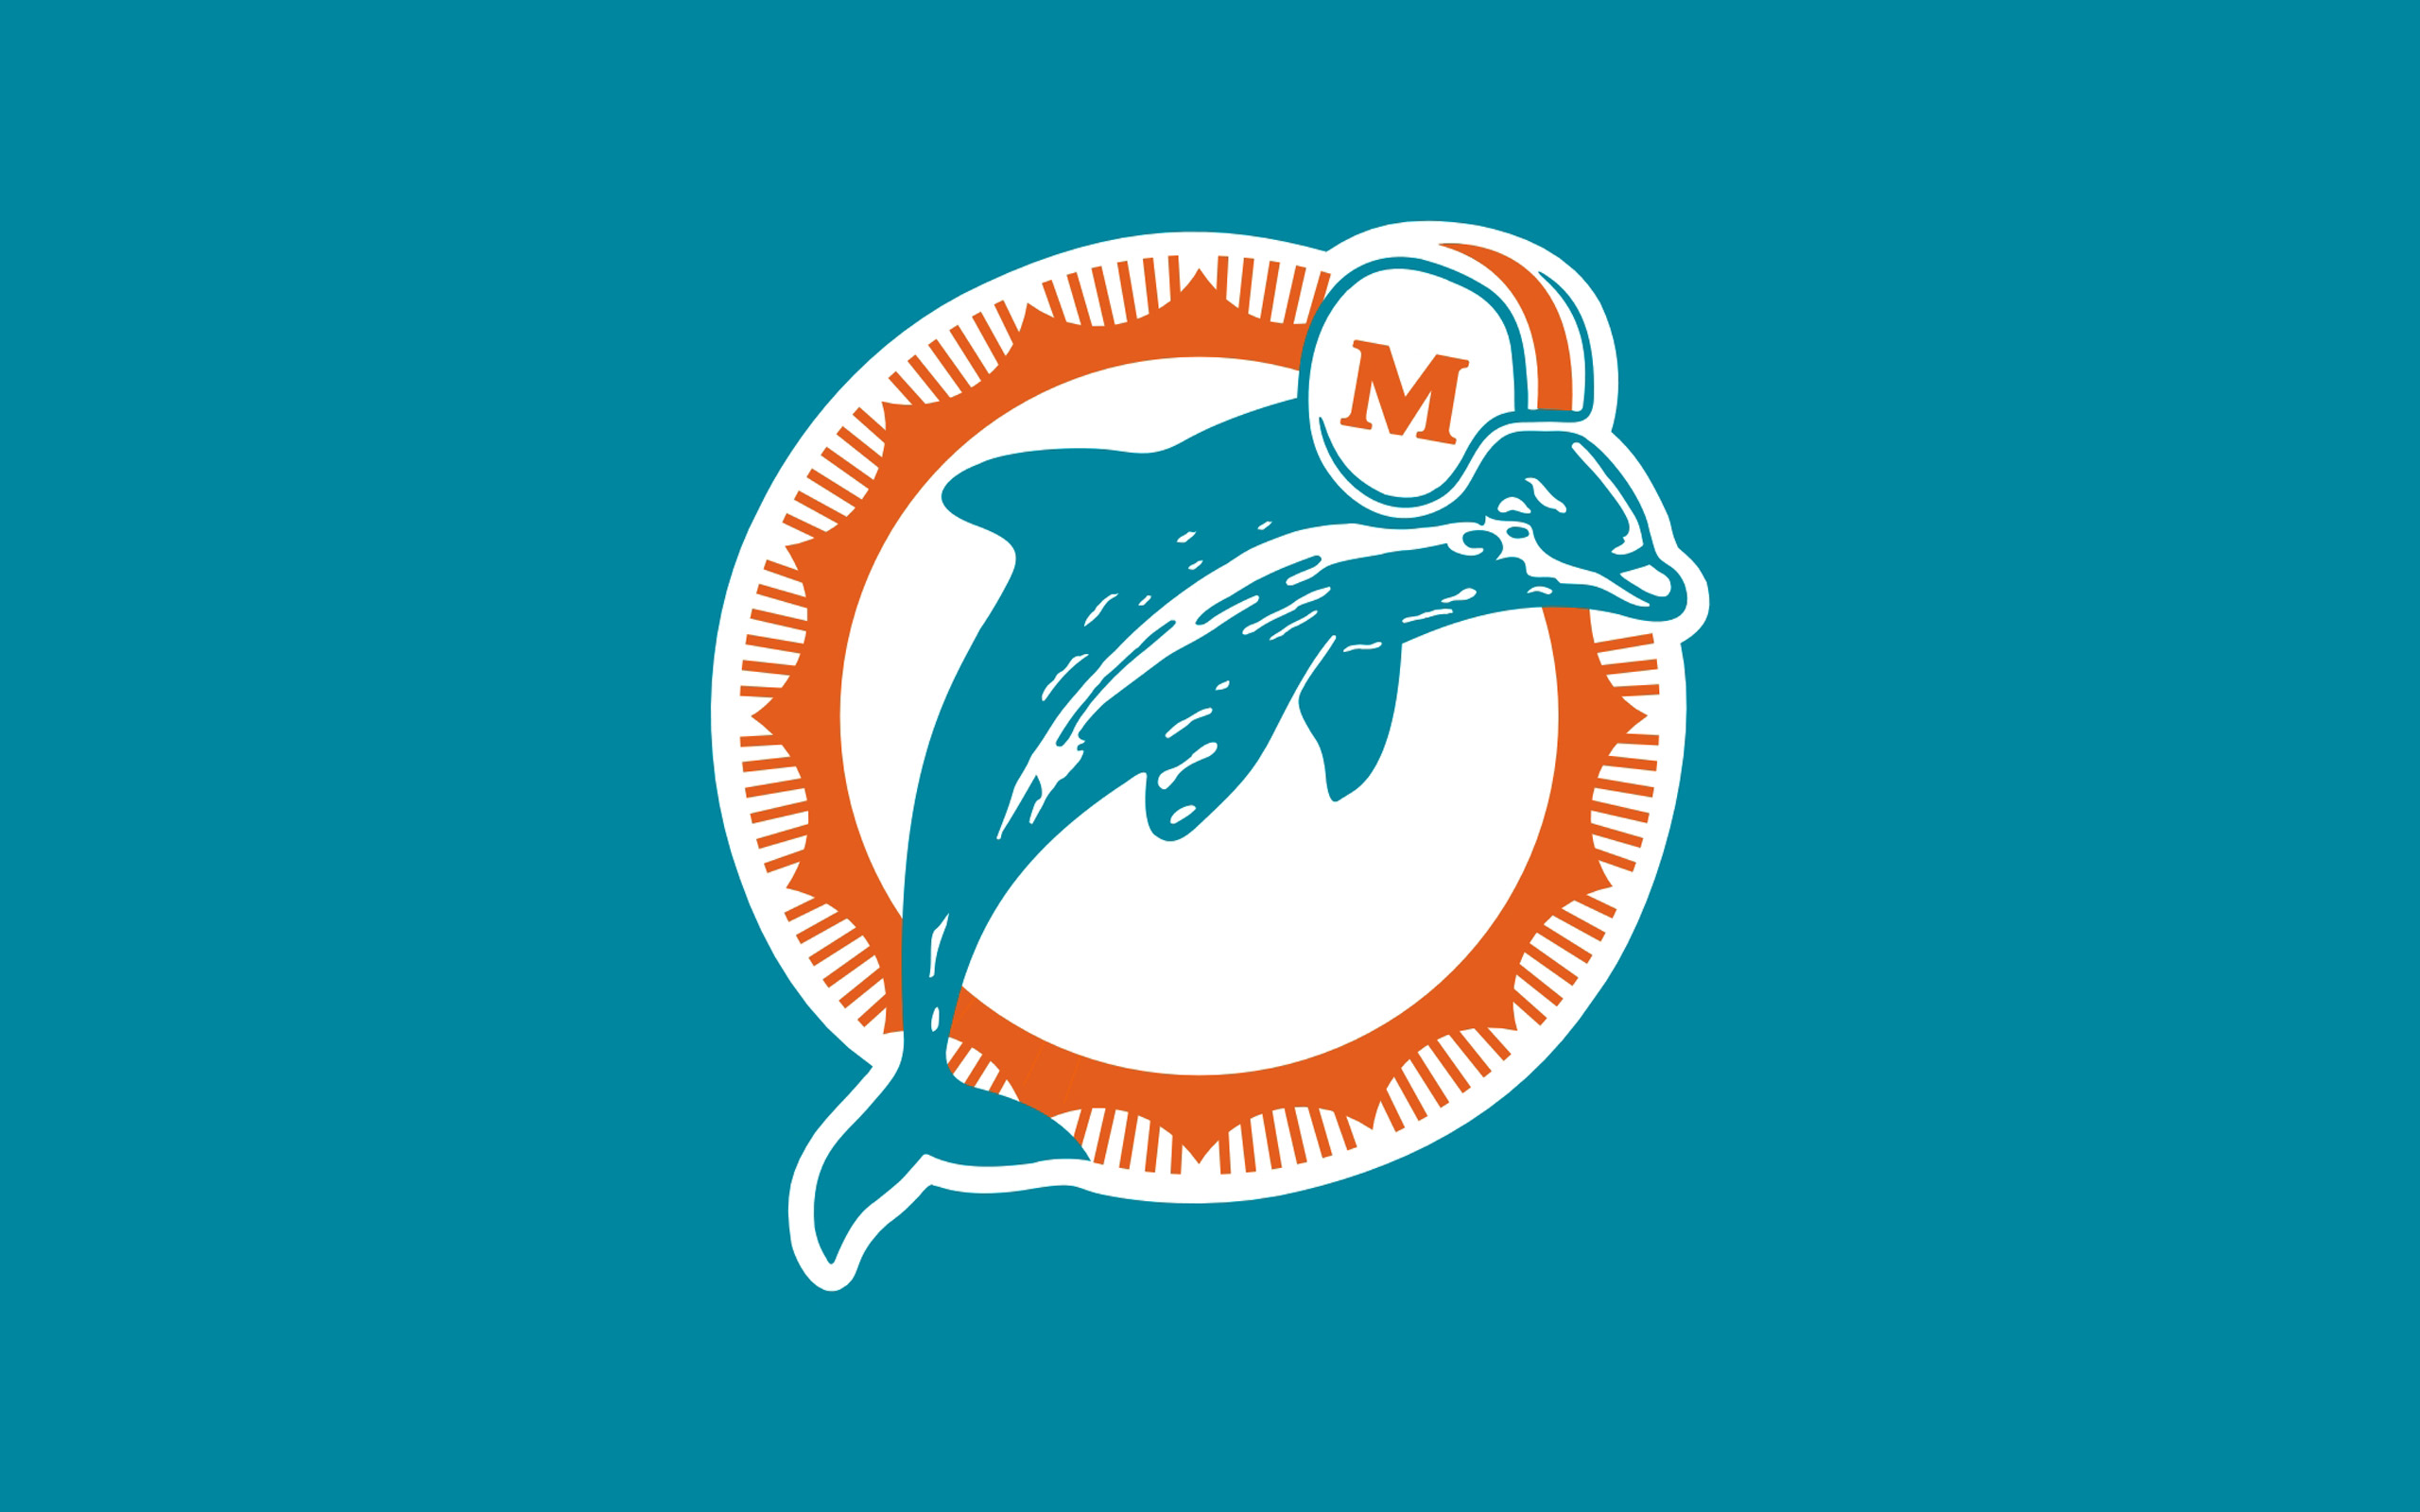 2560x1600 - Miami Dolphins Wallpapers 7